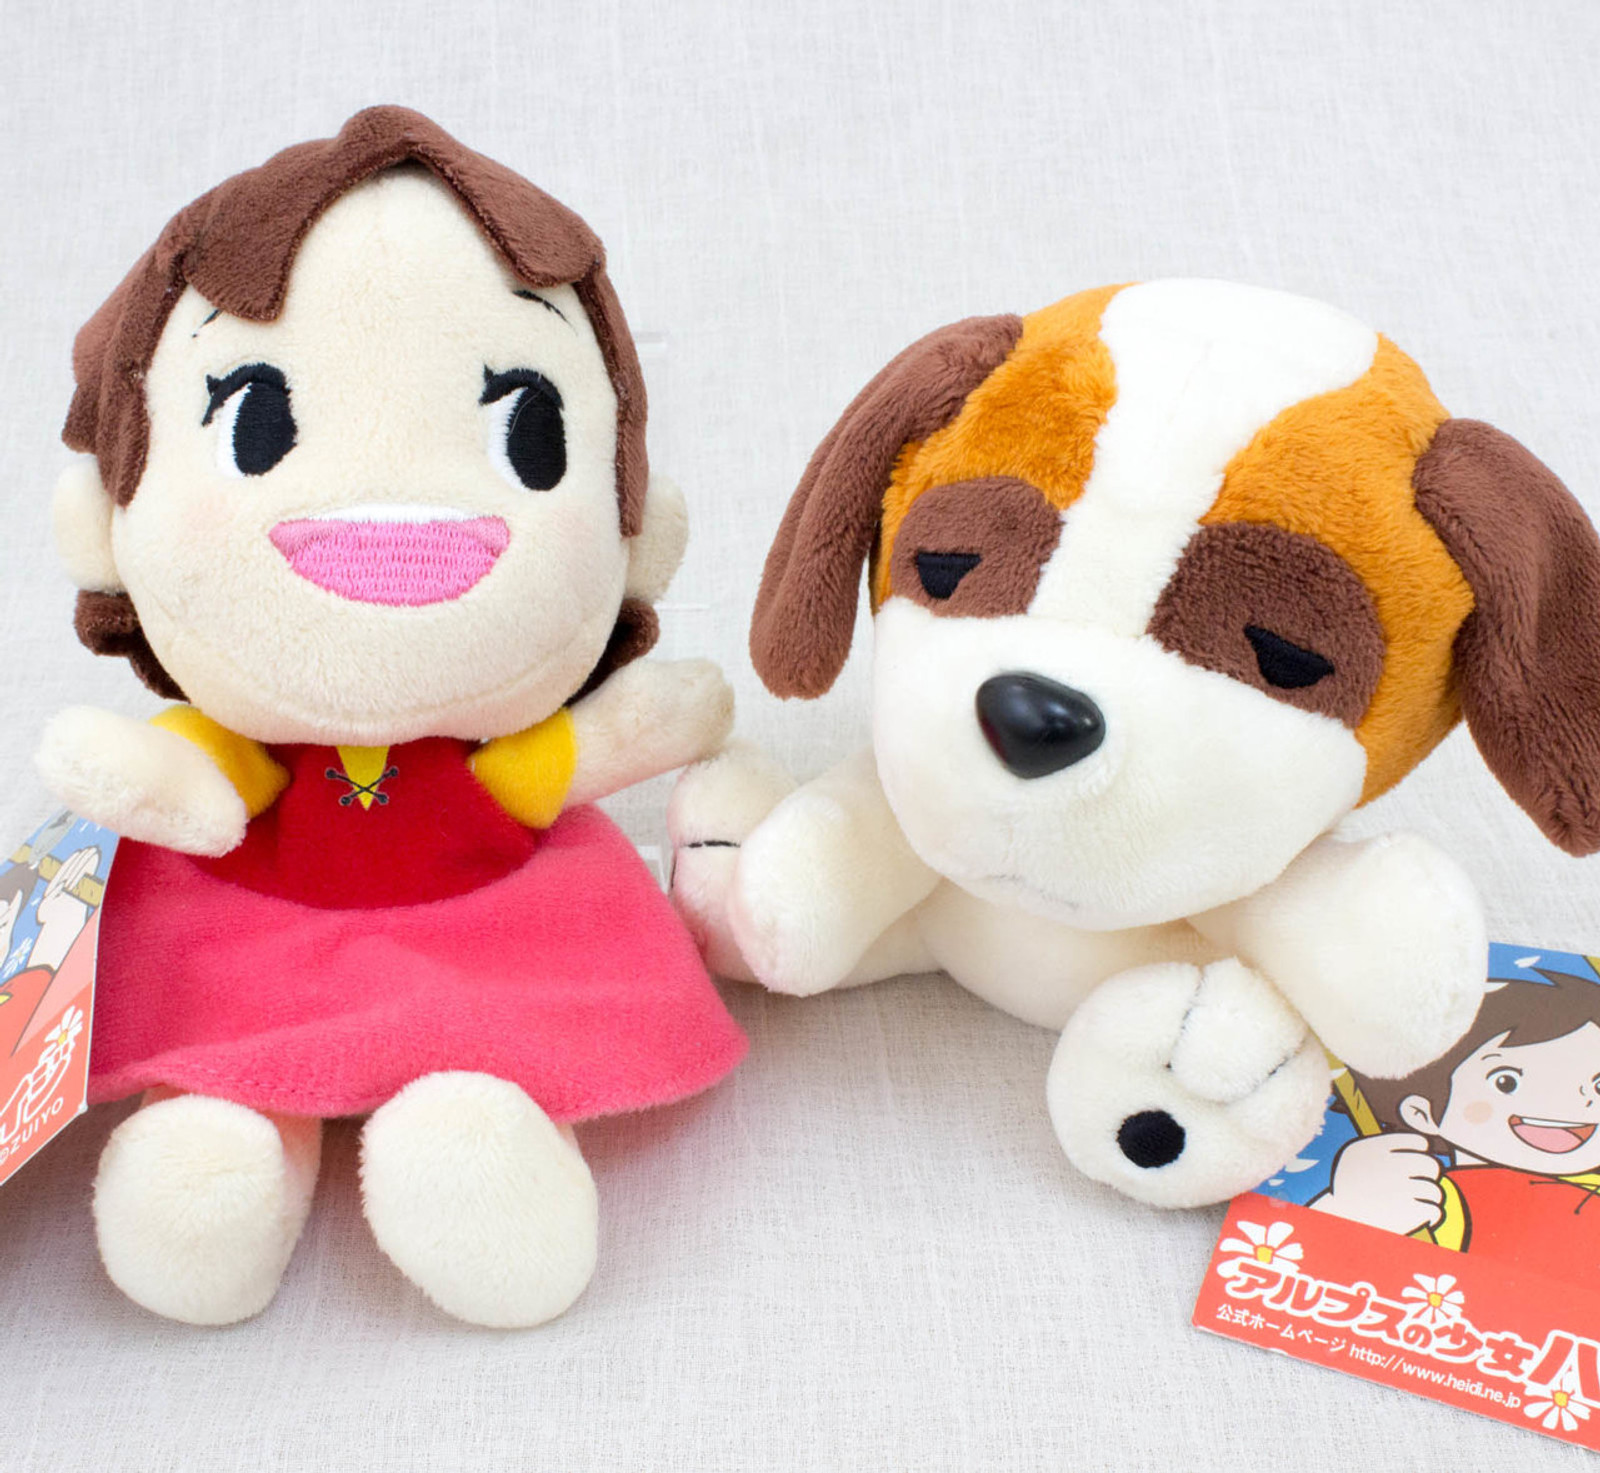 Heidi Girl of the Alps Heidi & Josef Mini Plush Doll Set Furyu JAPAN ANIME MANGA